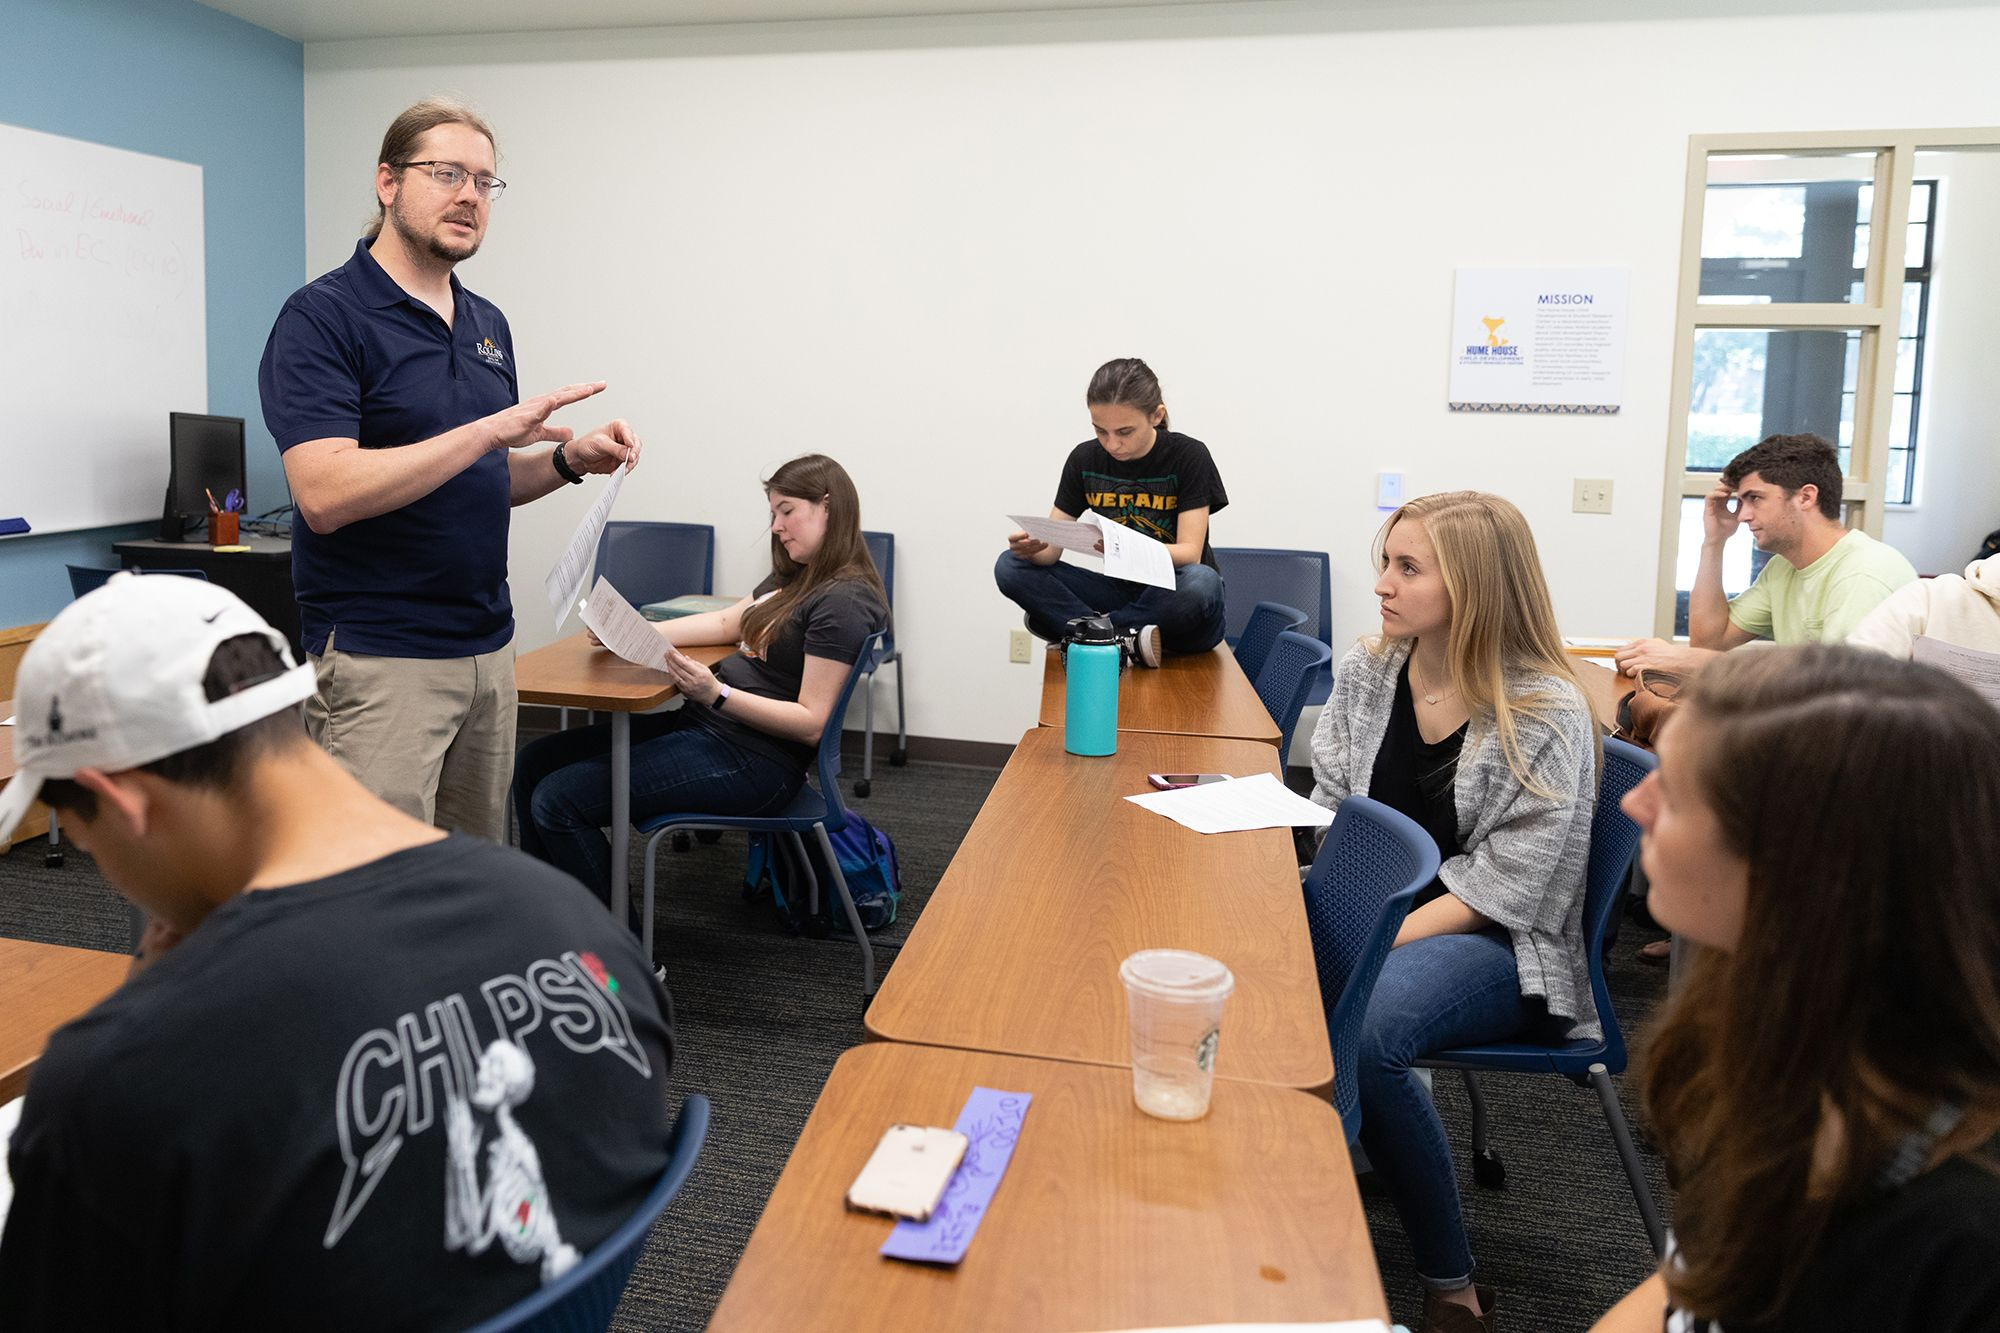 Professor Matthew Forsythe speaking to his class of students sitting at their desks.